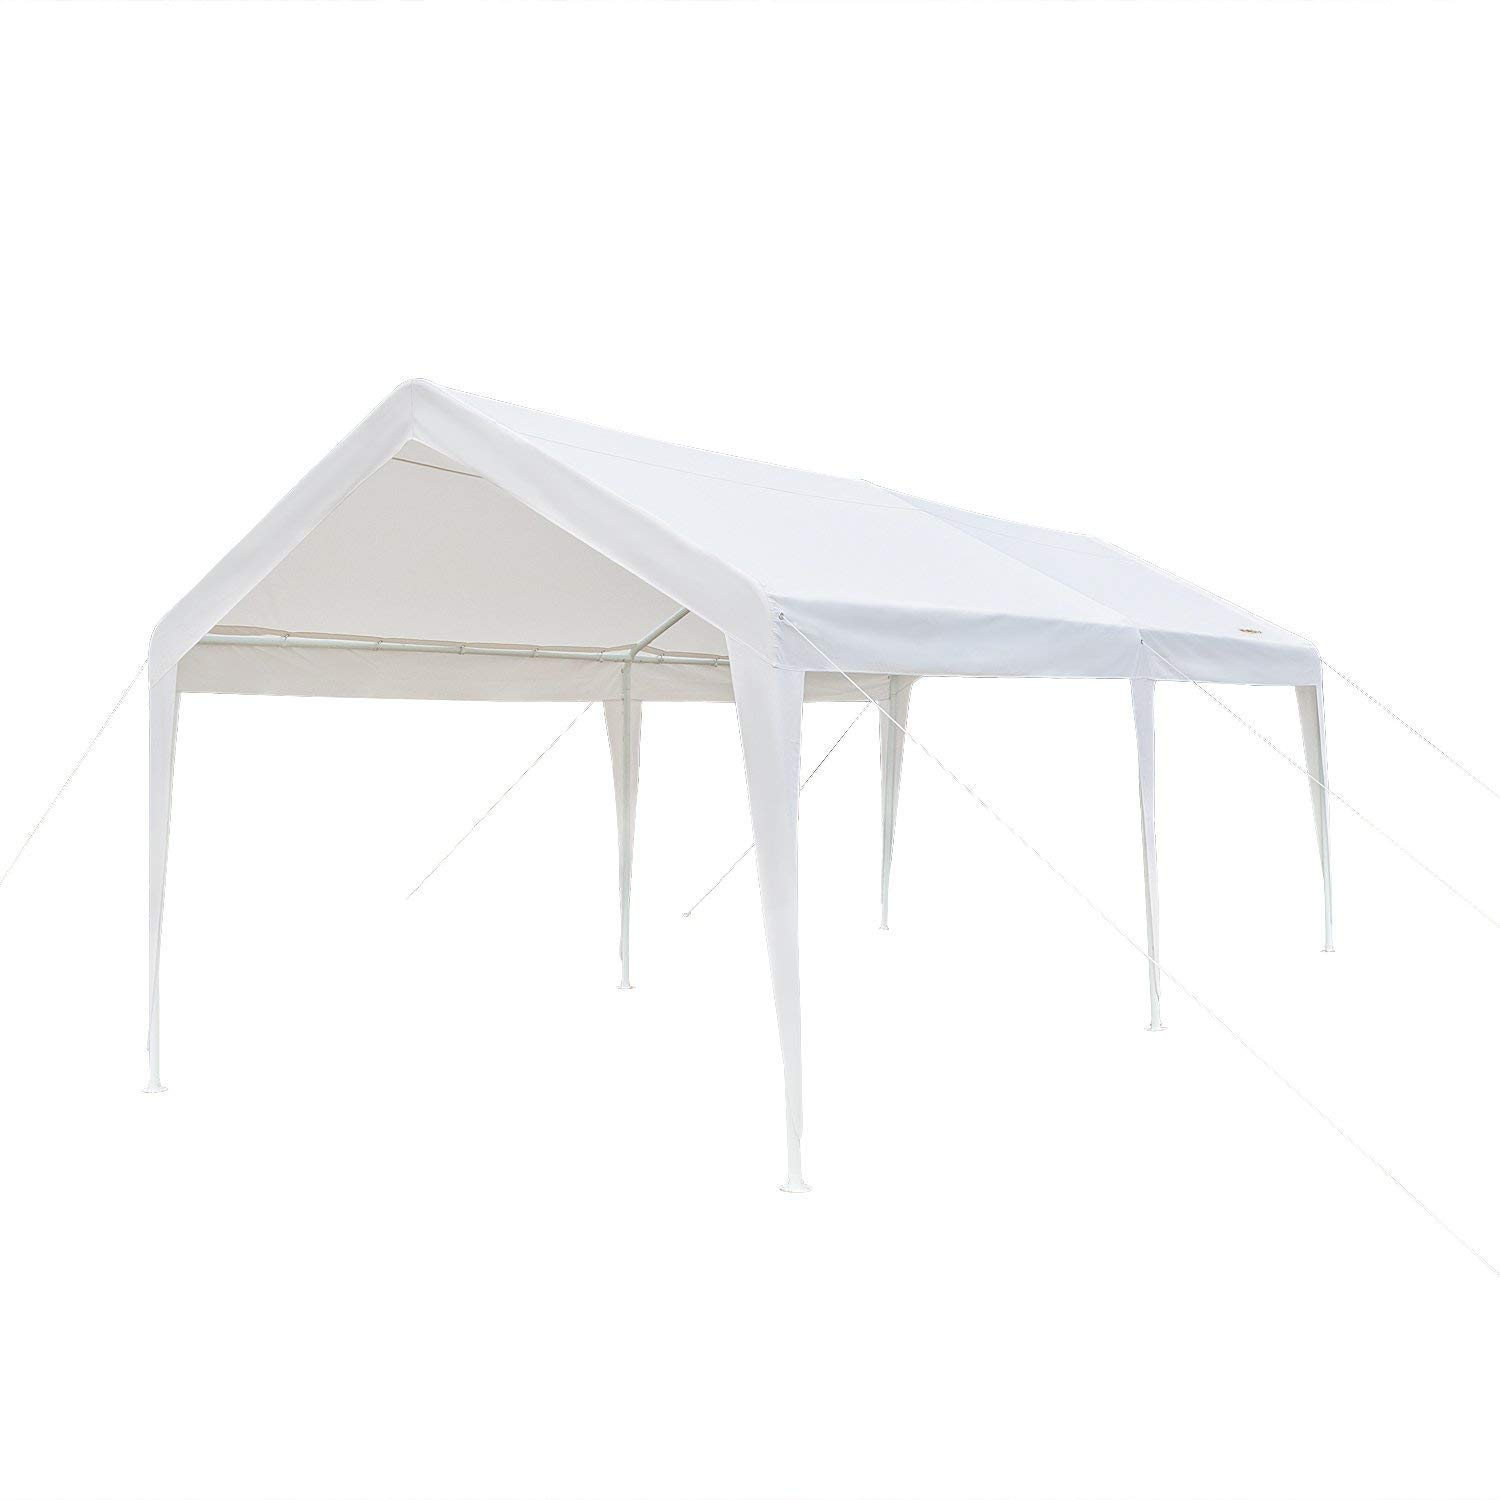 VINGLI 10' x 20' Heavy Duty Carport Car Canopy w/Edge Cover, Car Park, Anti UV Waterproof, Upgraded Steady Steel Legs, Versatile Garage Vehicle Shelter, White